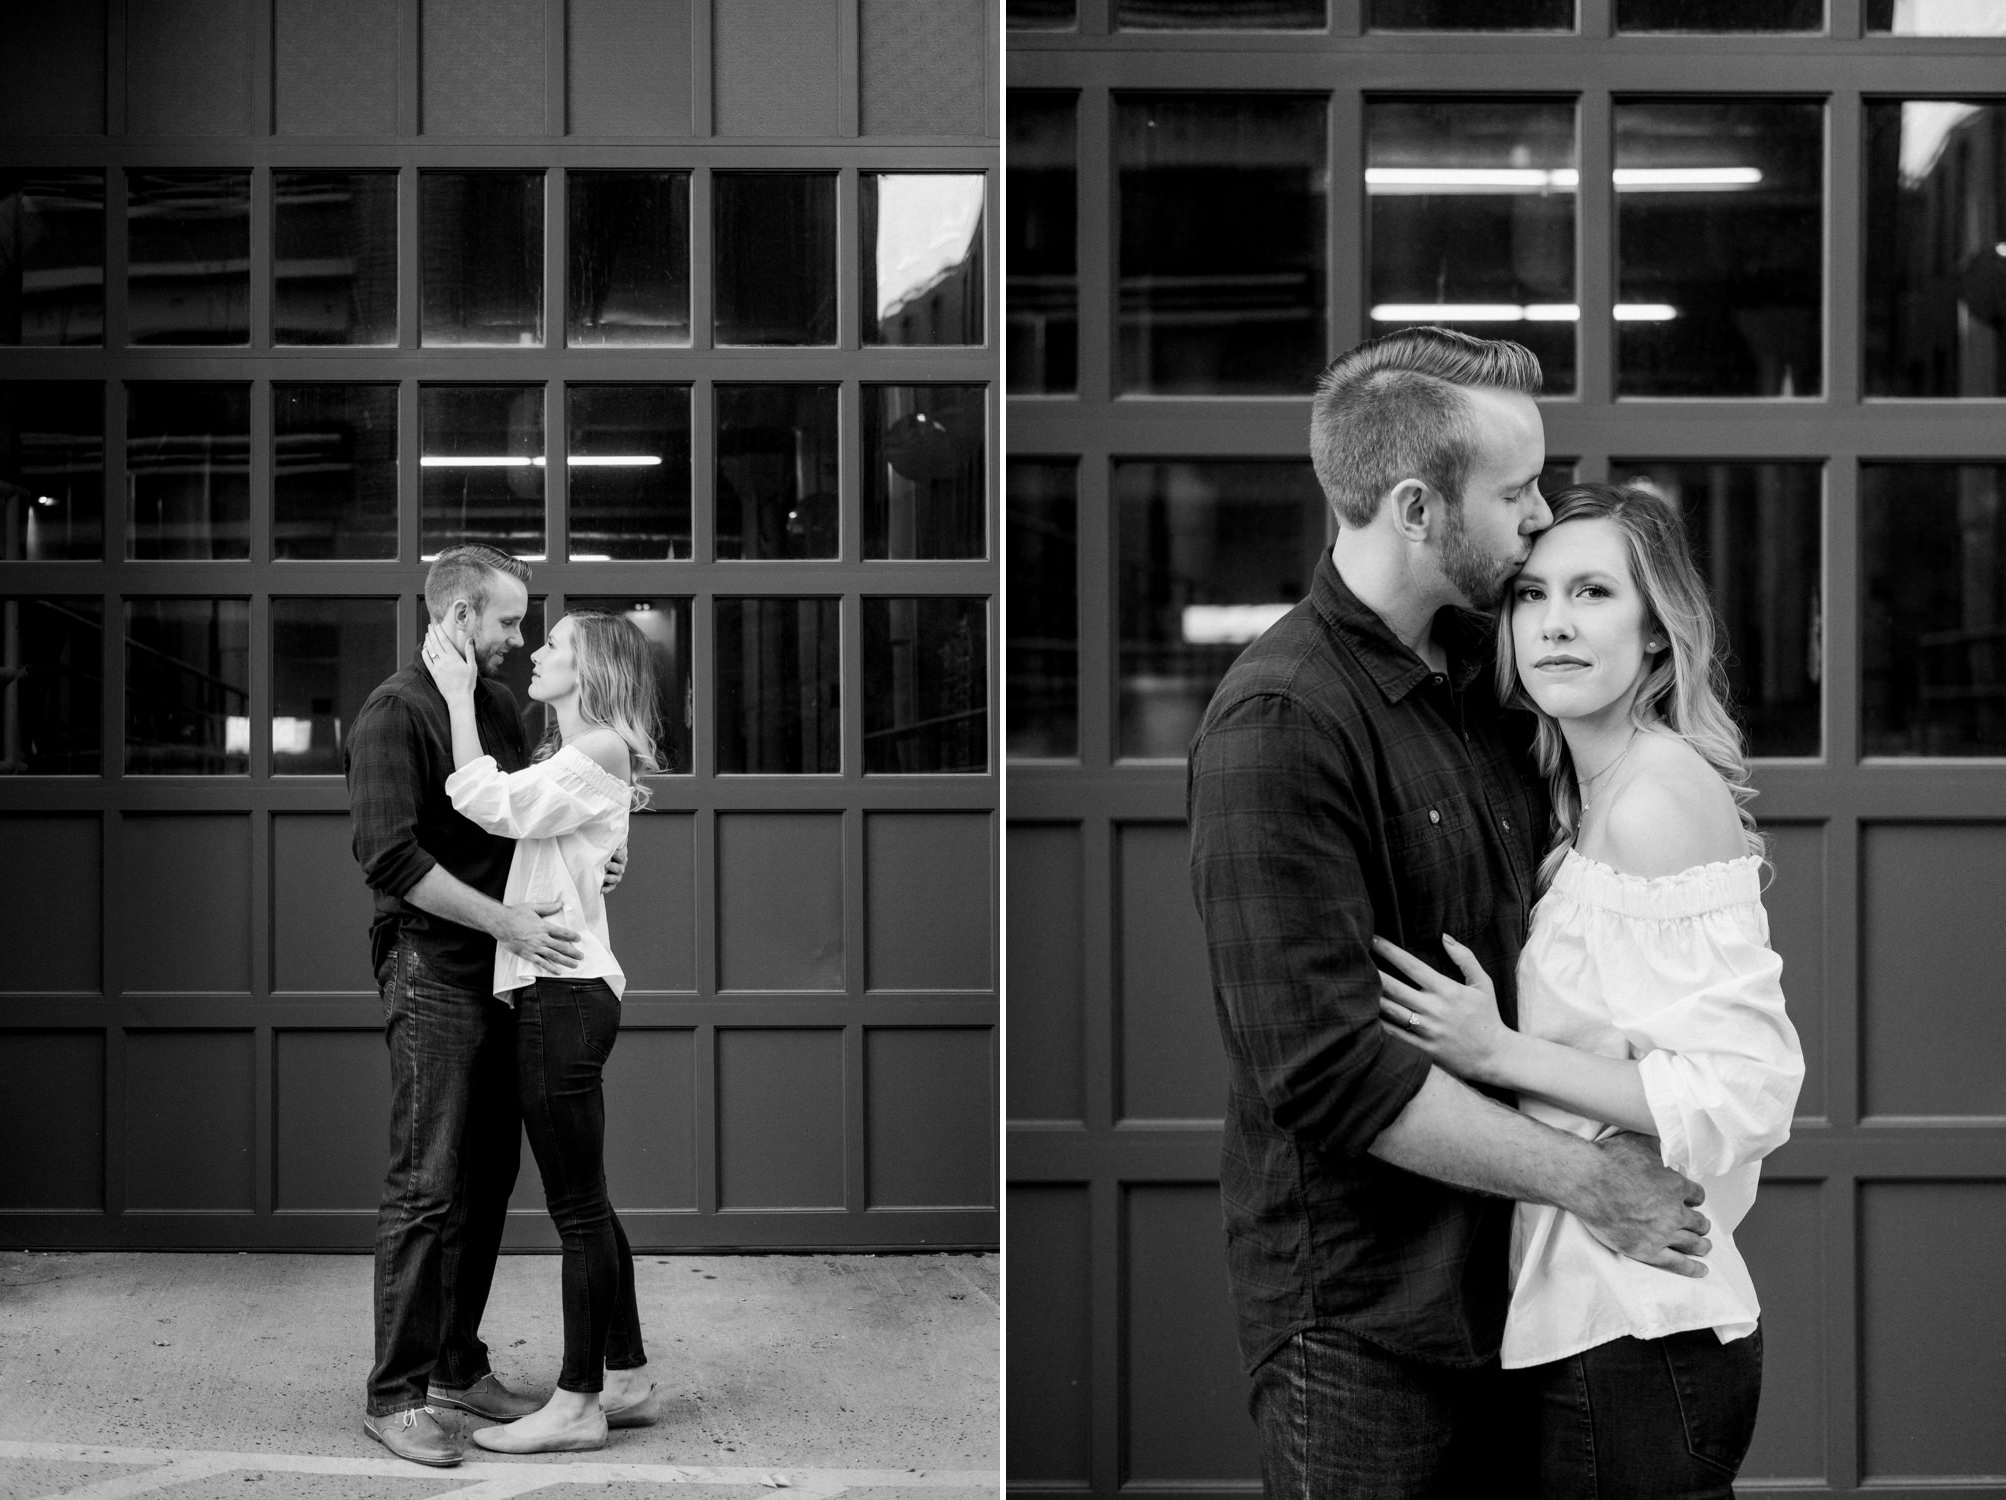 Kansas City Engagement Photographer-Neal Dieker-Kansas City, Kansas-Kansas City, Kansas-Neal Dieker Photography-114.jpg